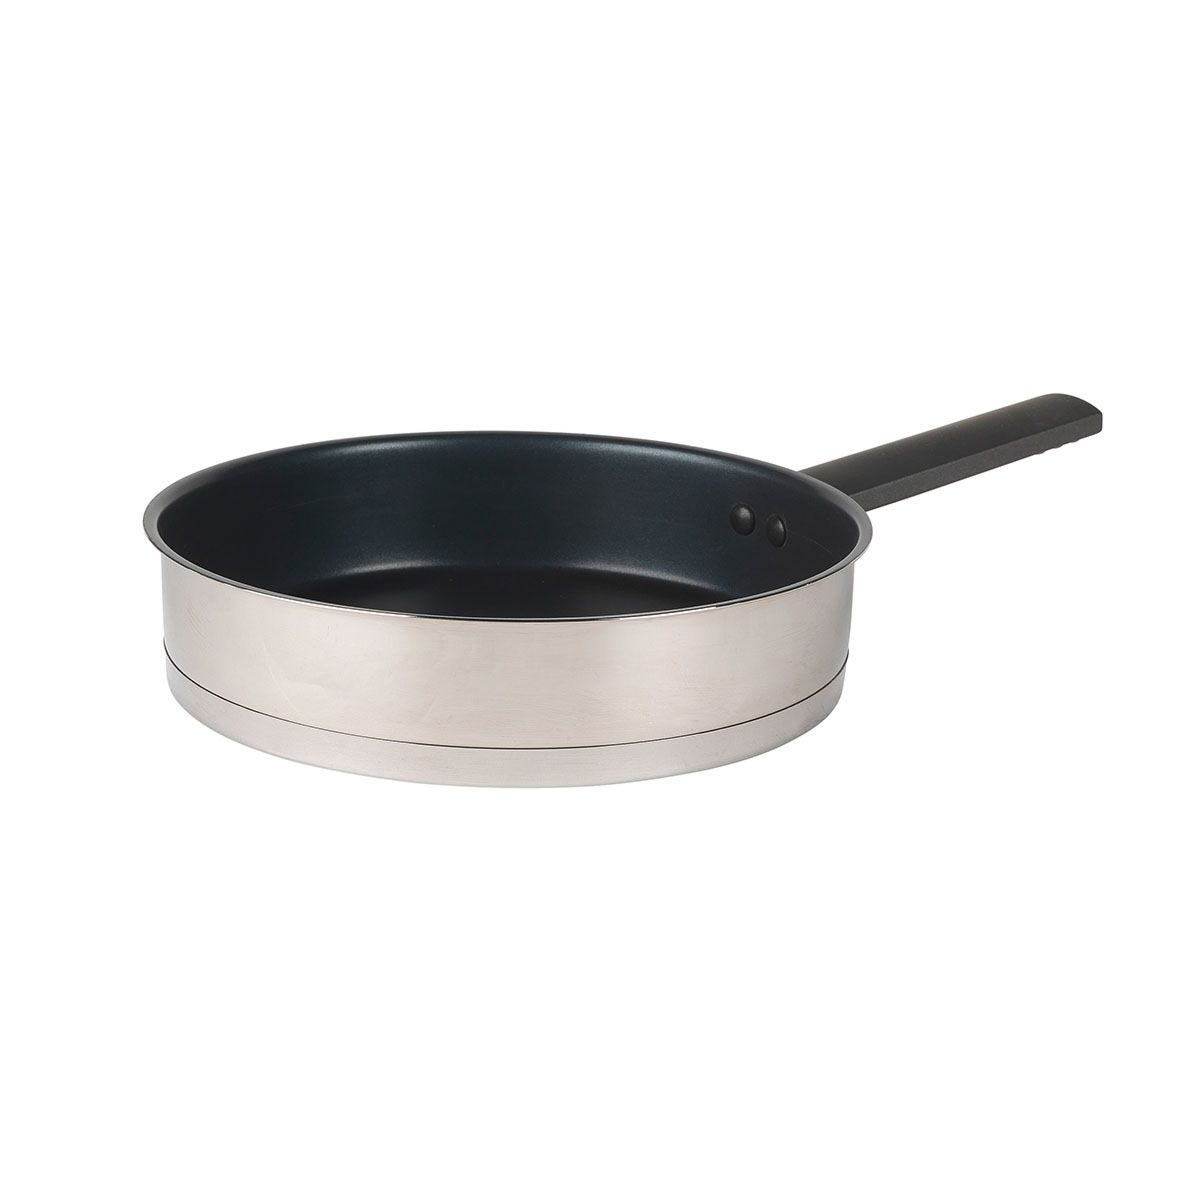 Russell Hobbs RH01159EU Excellence Collection Dual-Layer Non-Stick Frying Pan 24cm - Stainless Steel